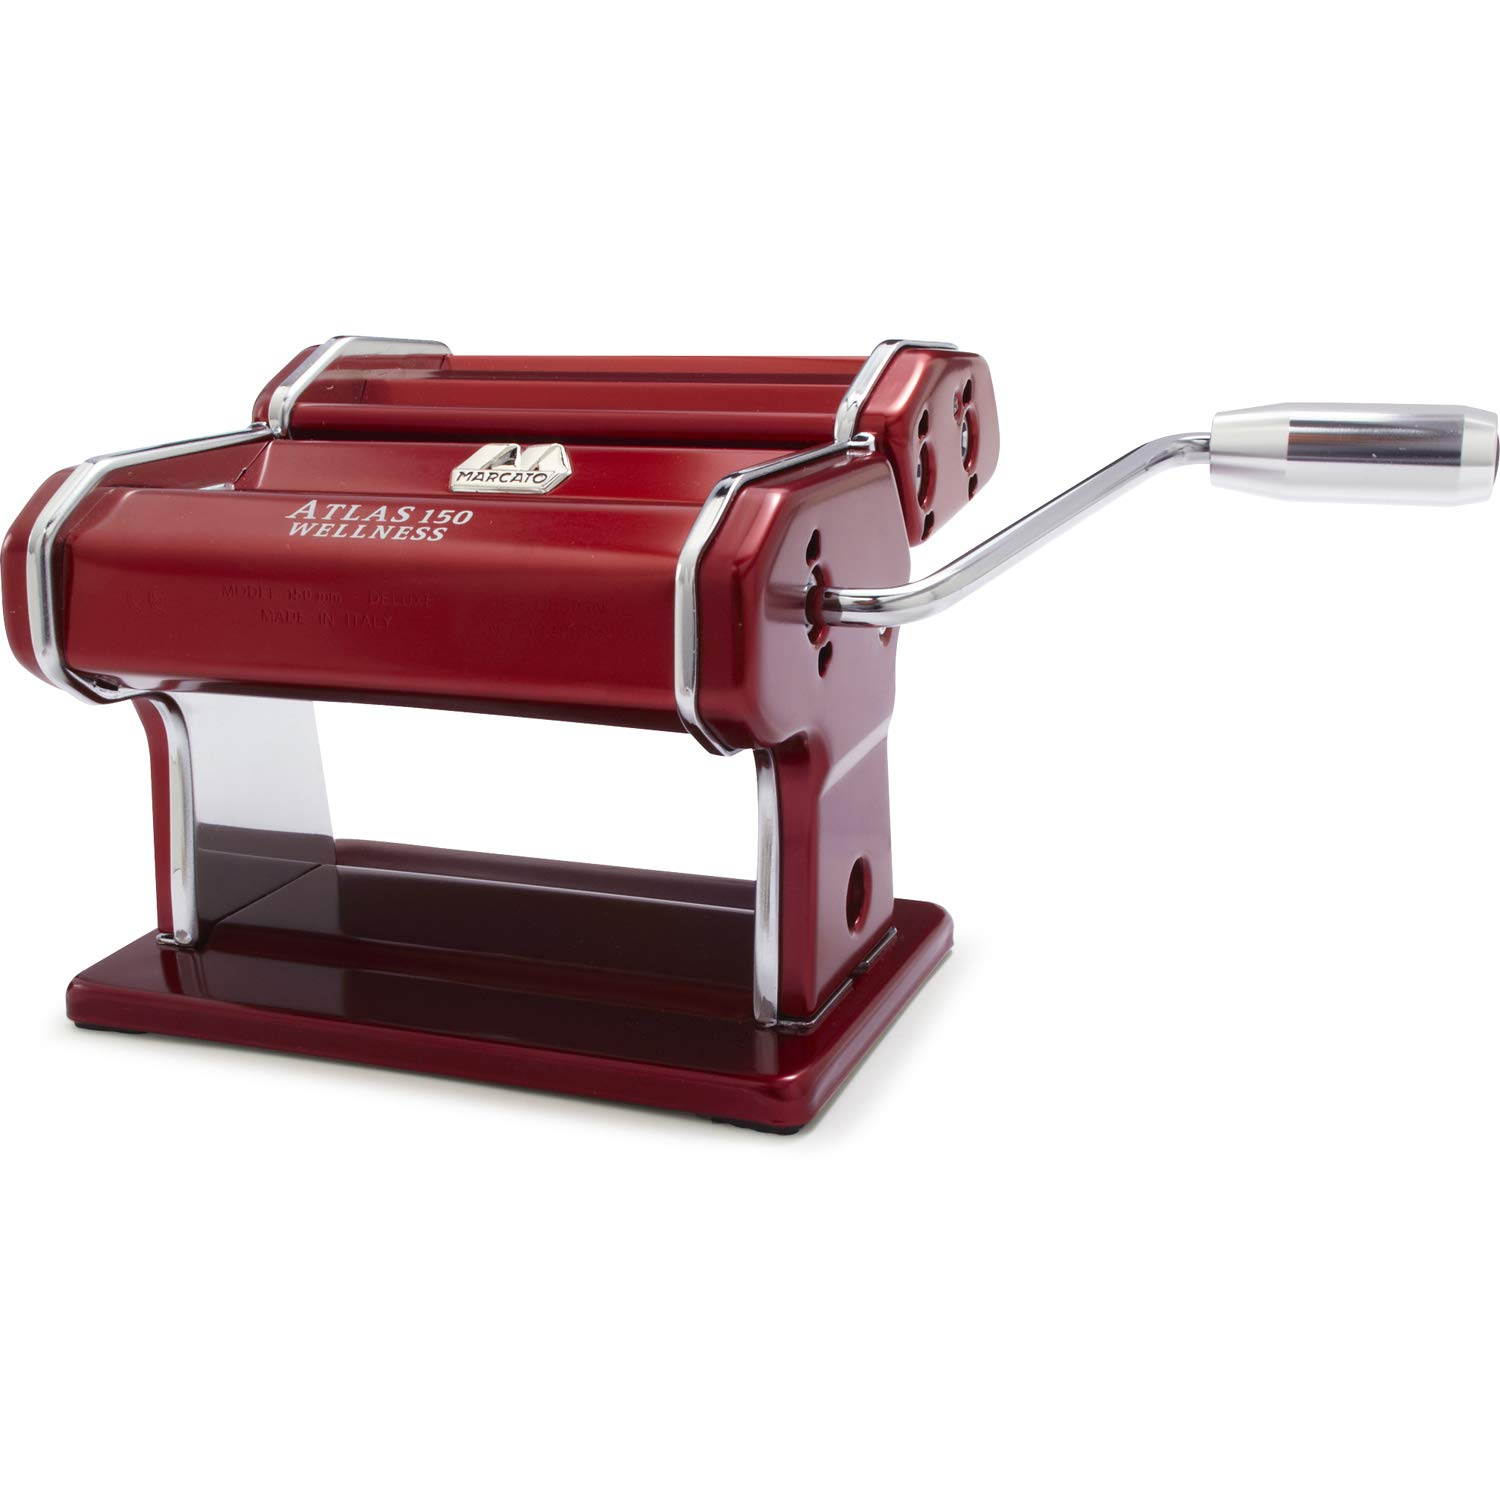 Marcato 8334 Atlas 150 Machine, Made in Italy, Red, Includes Pasta Cutter, Hand Crank, and Instructions, Red, Red by Marcato